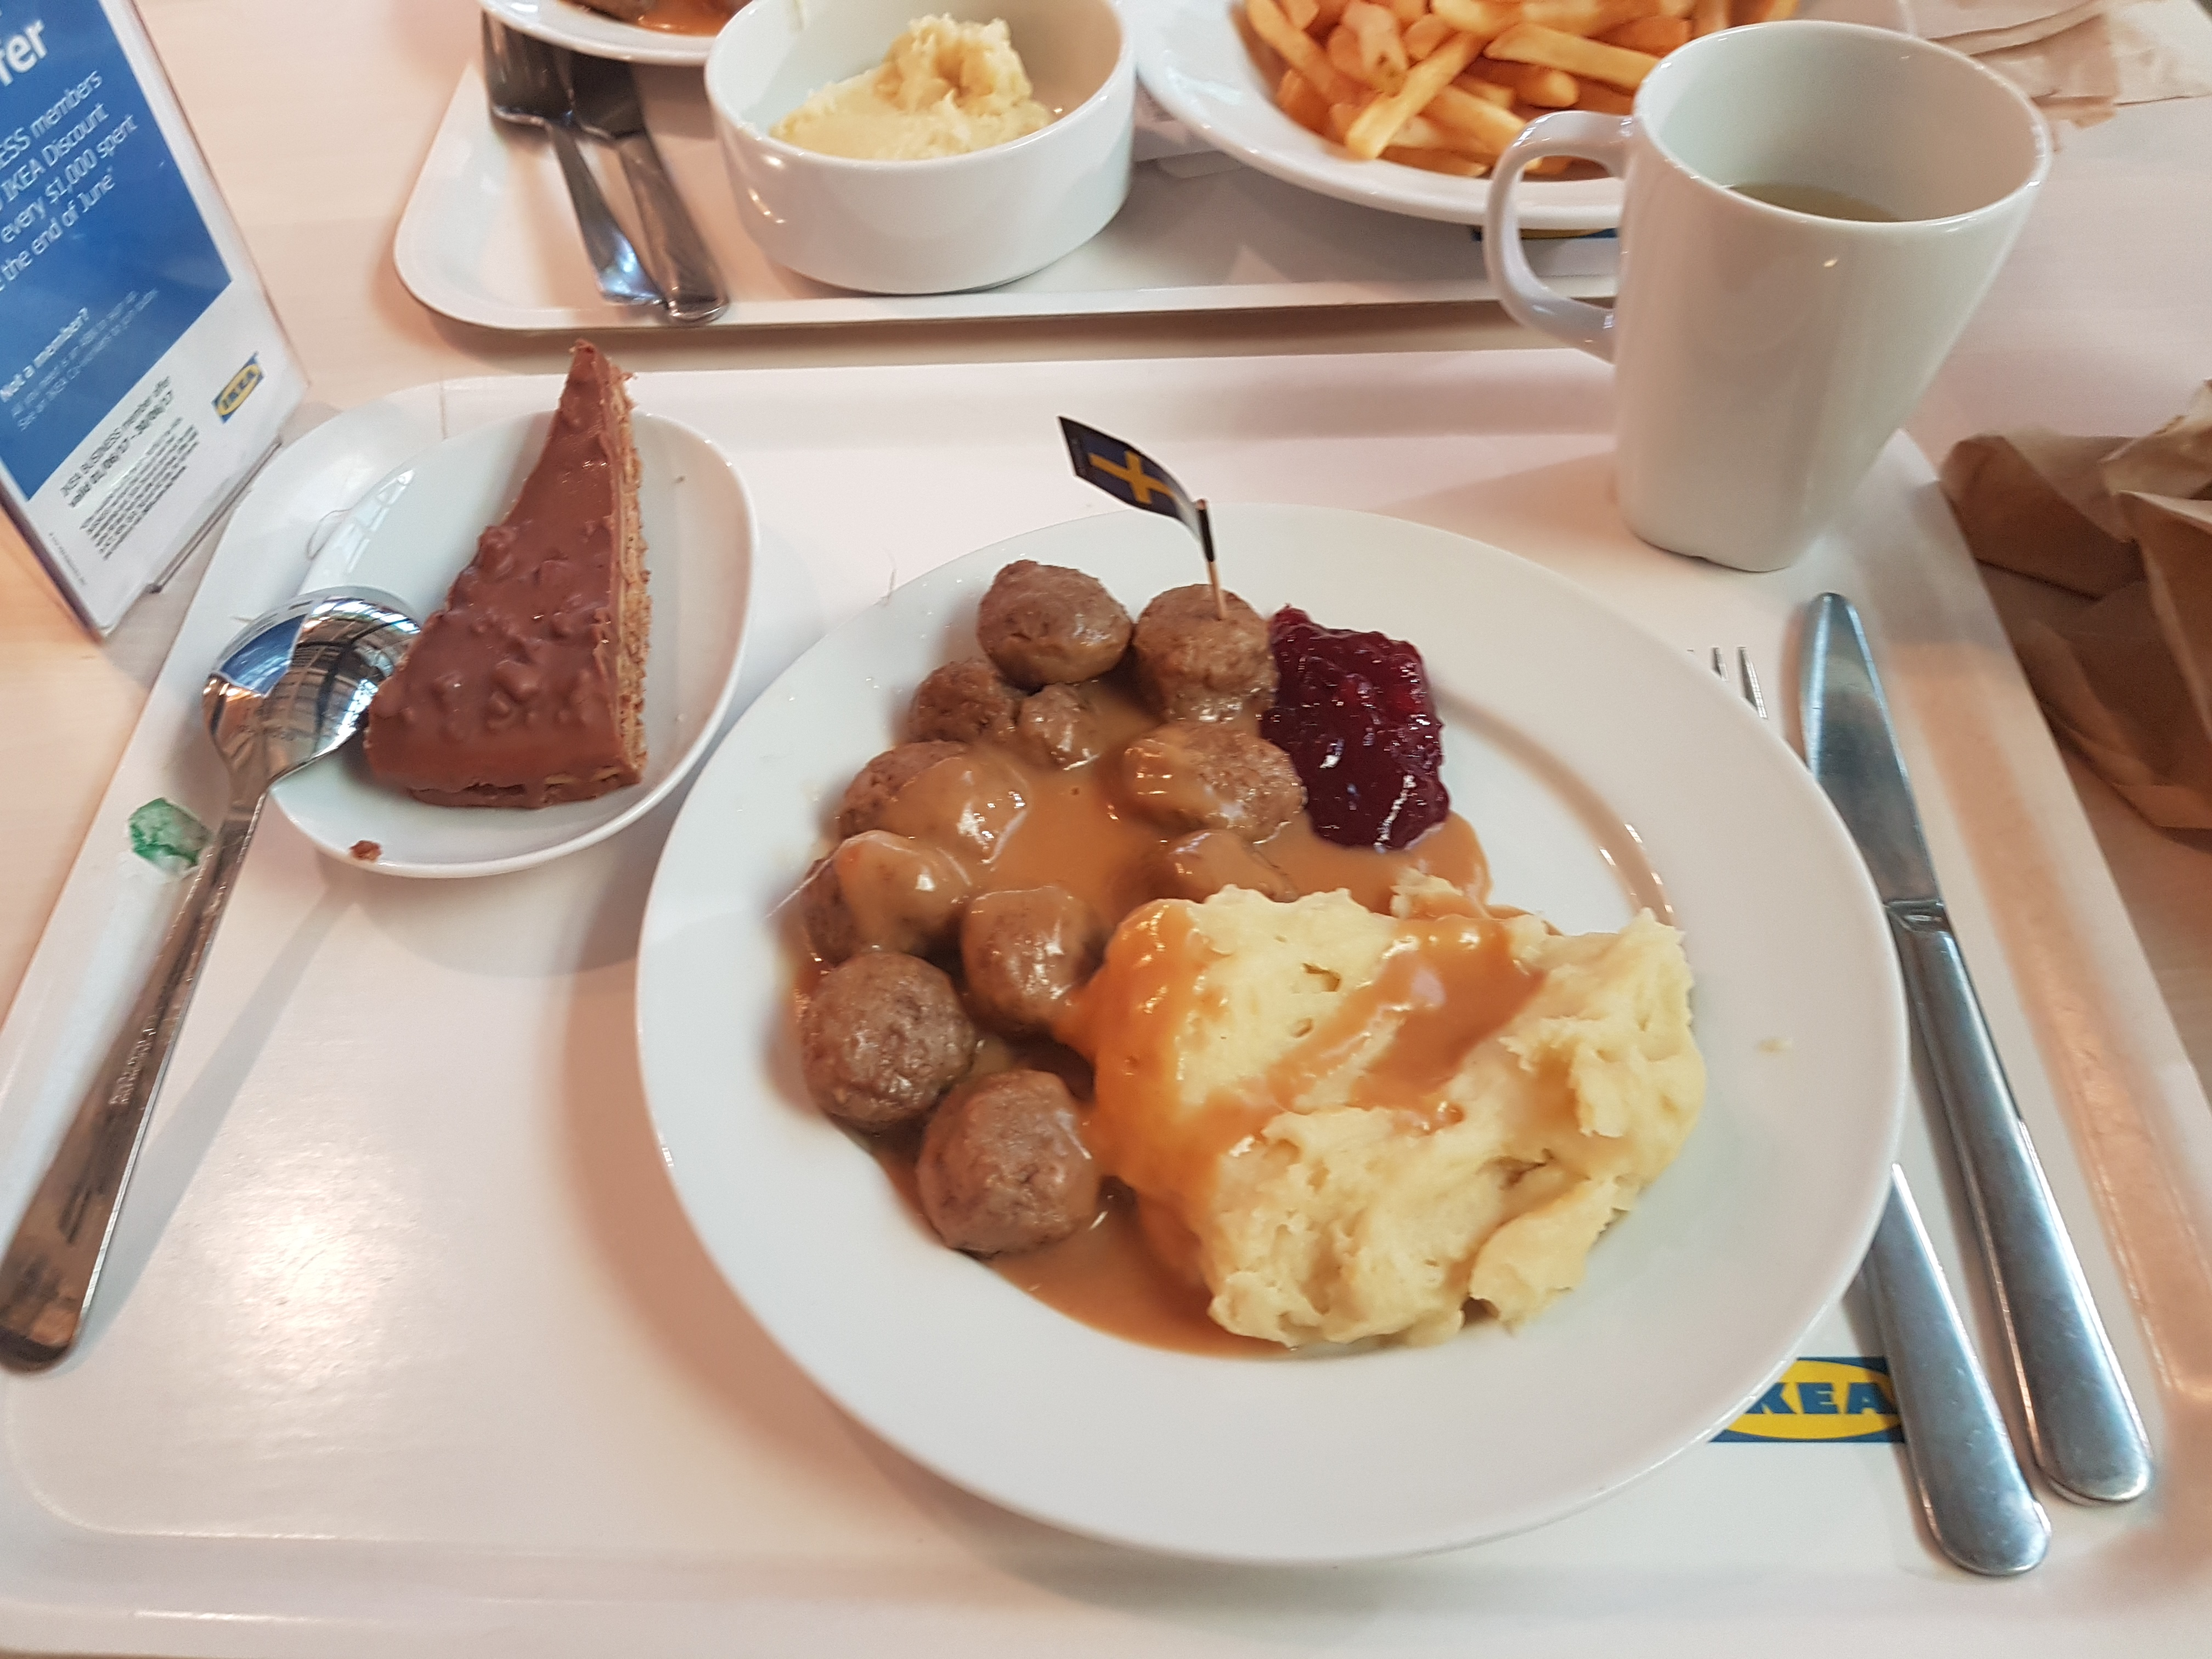 Balance Cuisine Ikea File Swedish Meatballs In Ikea Cafe Jpg Wikimedia Commons